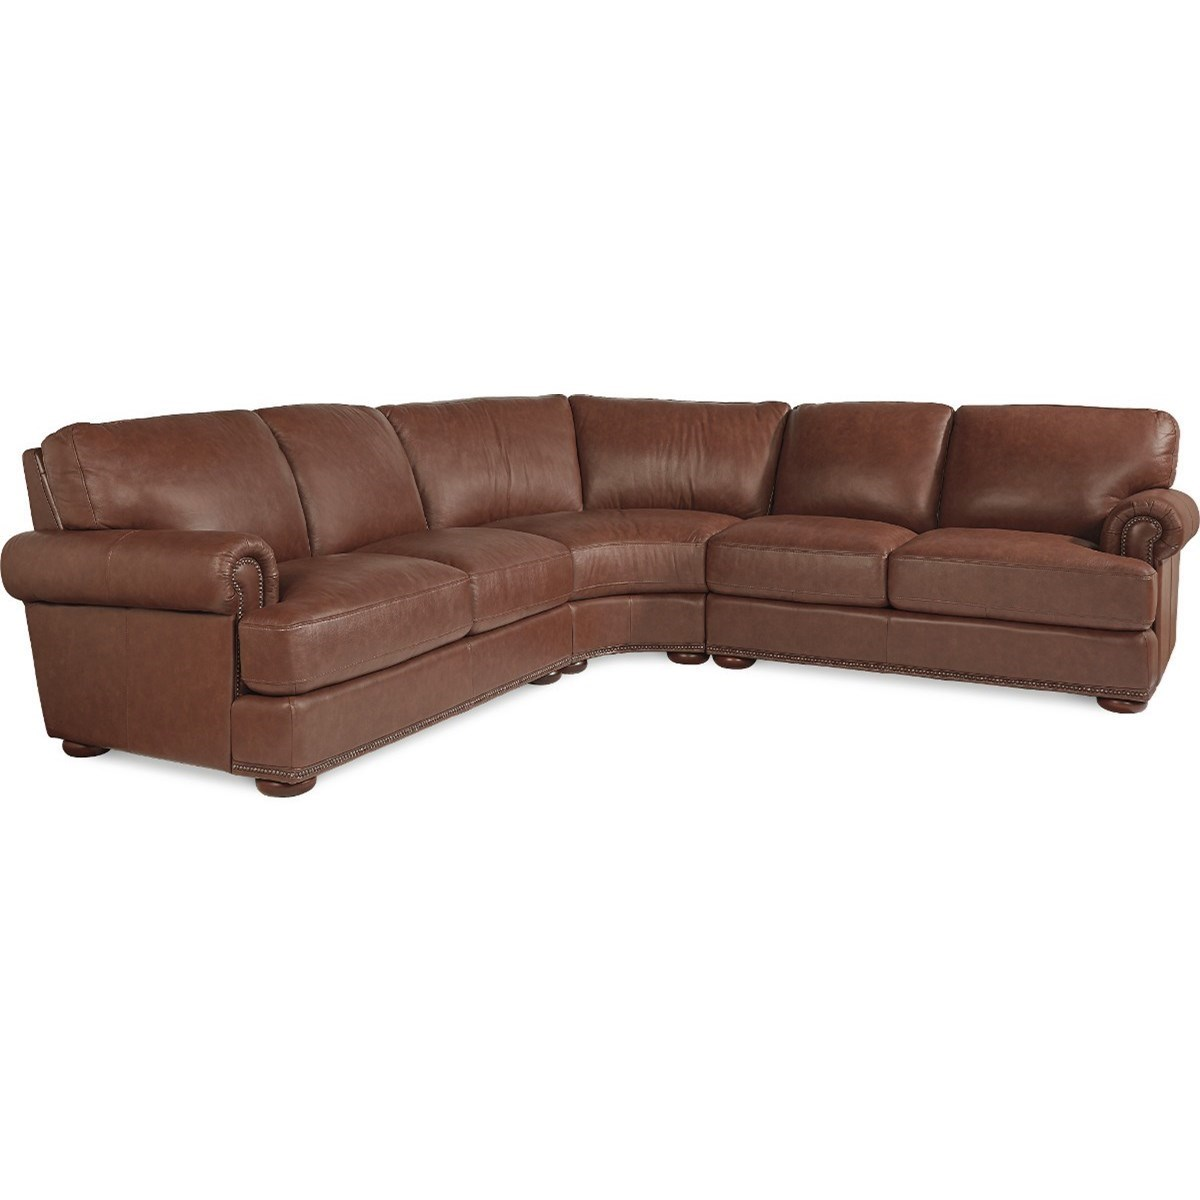 La-Z-Boy Andrew Traditional 3 Piece Sectional with Nailhead Trim  sc 1 st  Great American Home Store : la z boy sectionals - Sectionals, Sofas & Couches